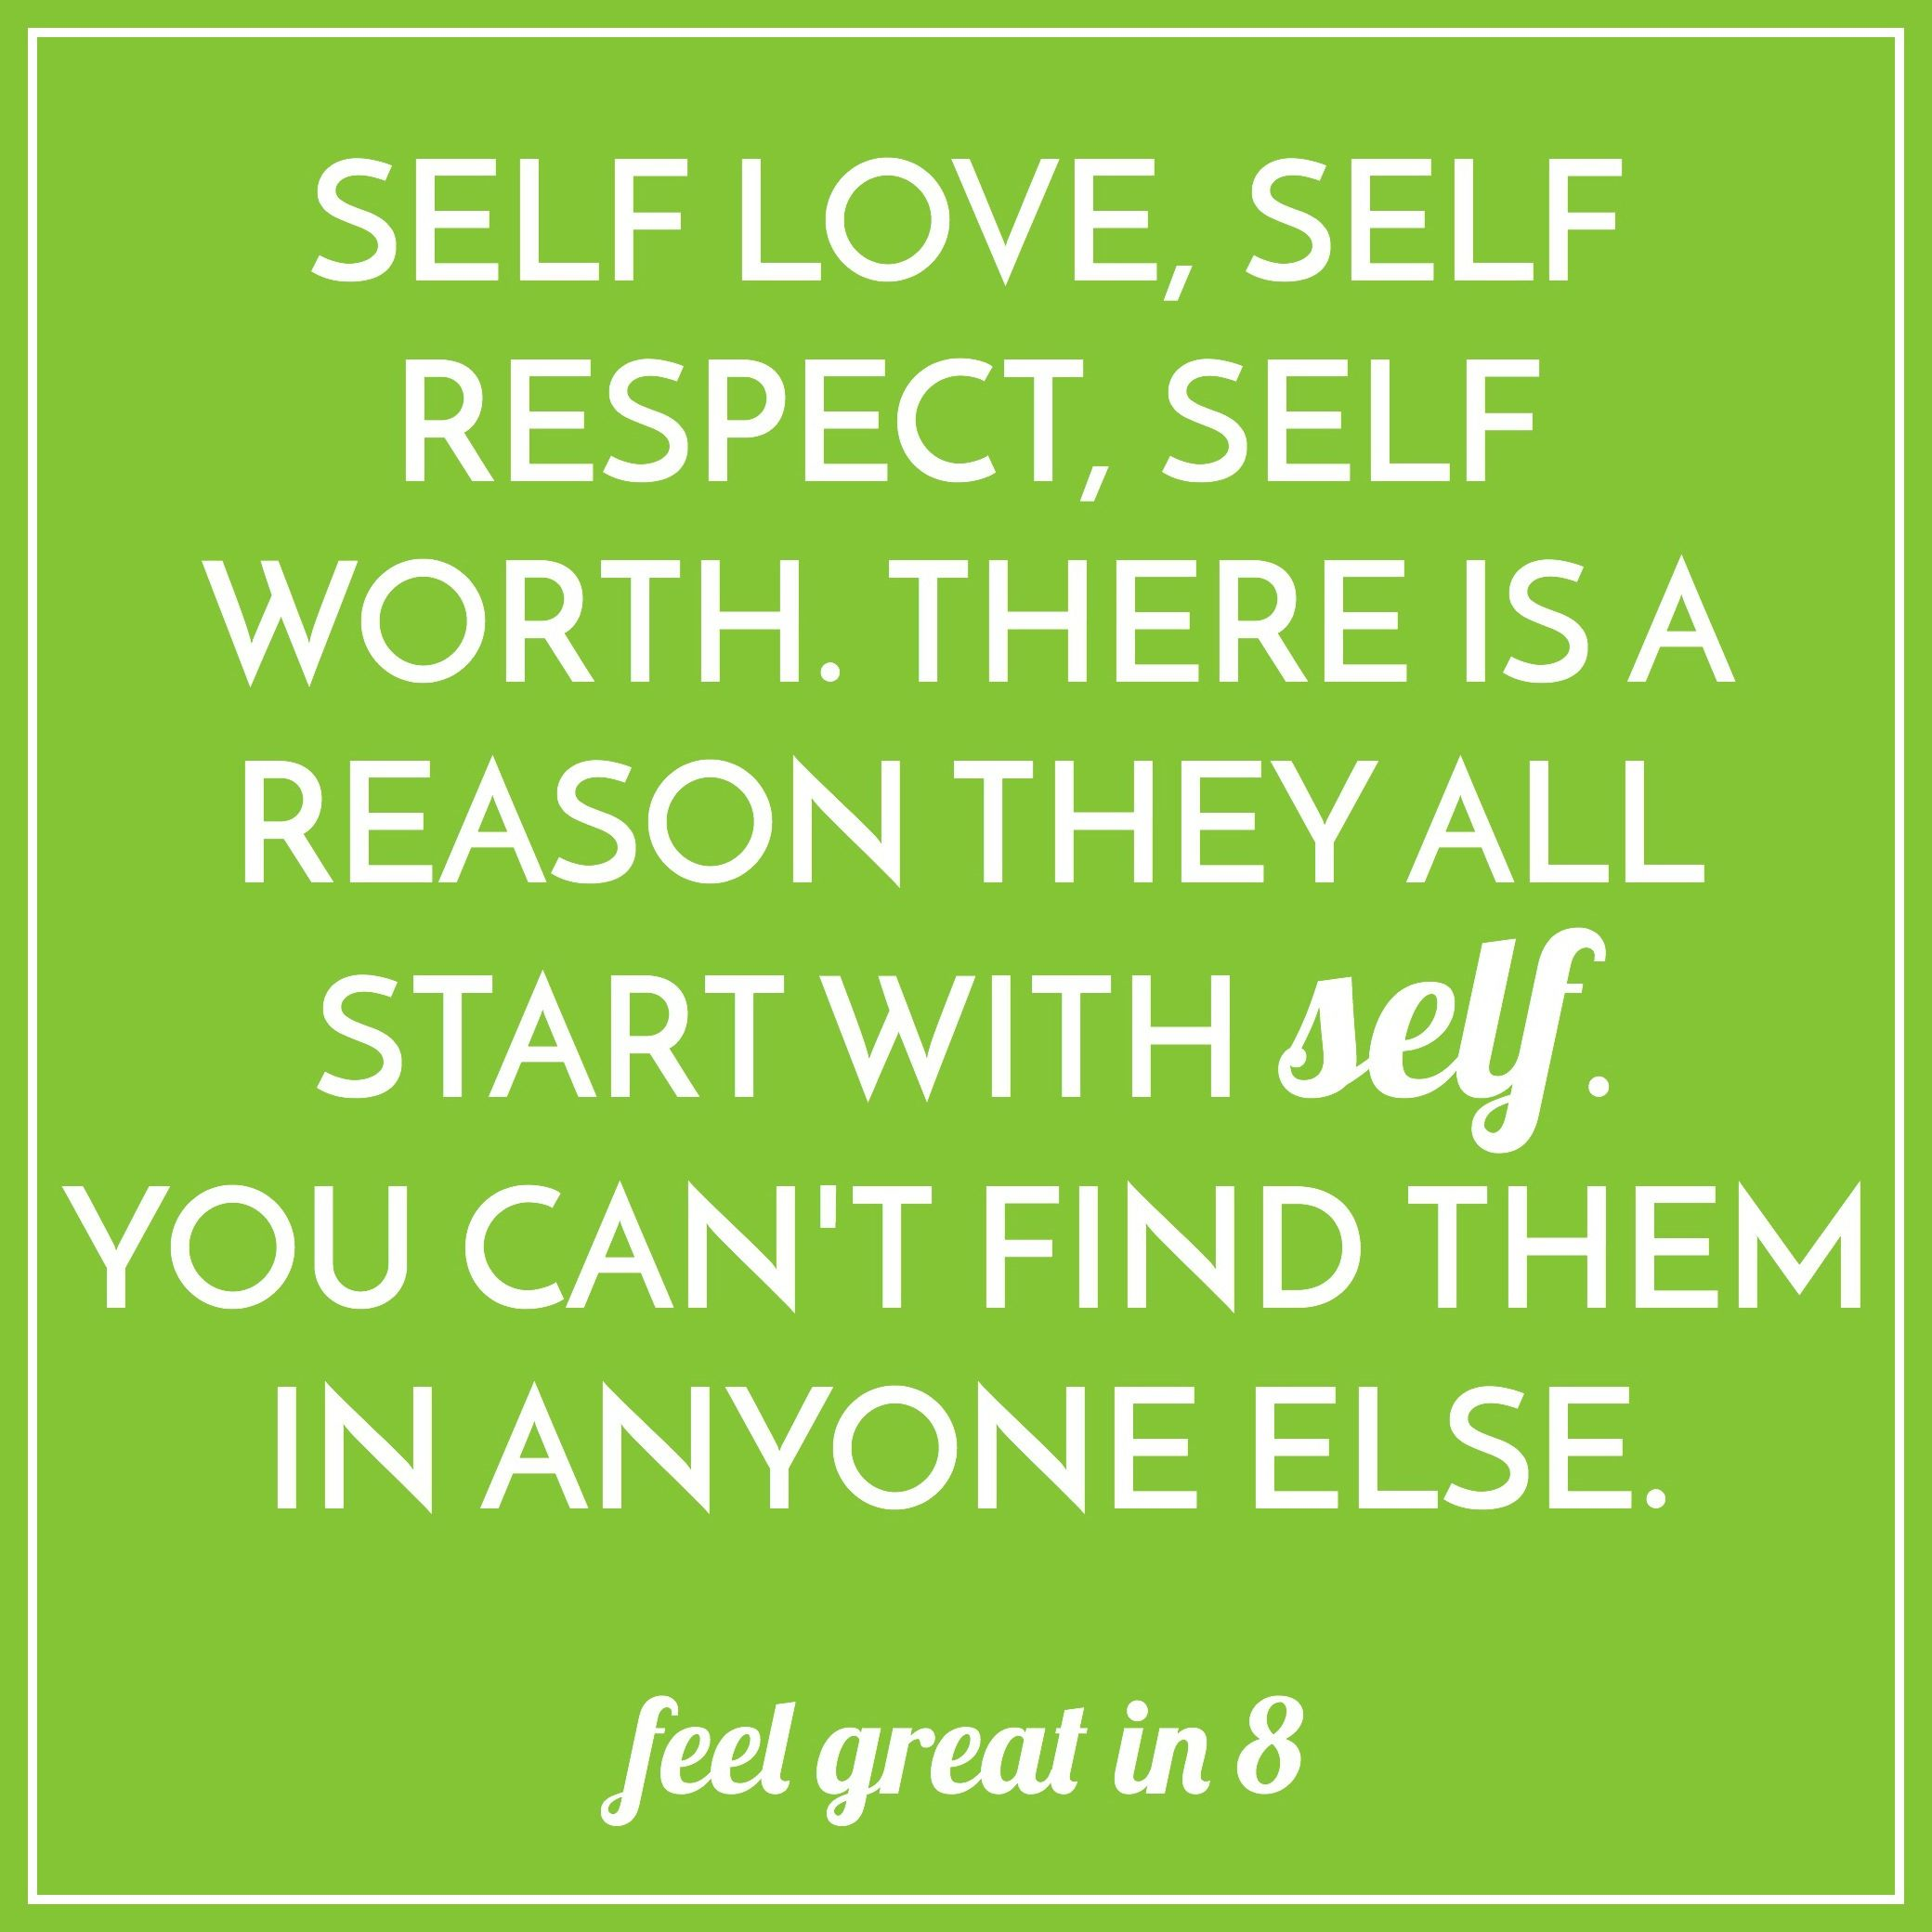 Self Respect Quotes 25 Quotes To Inspire & Brighten Your Day  Thoughts And Mental Health